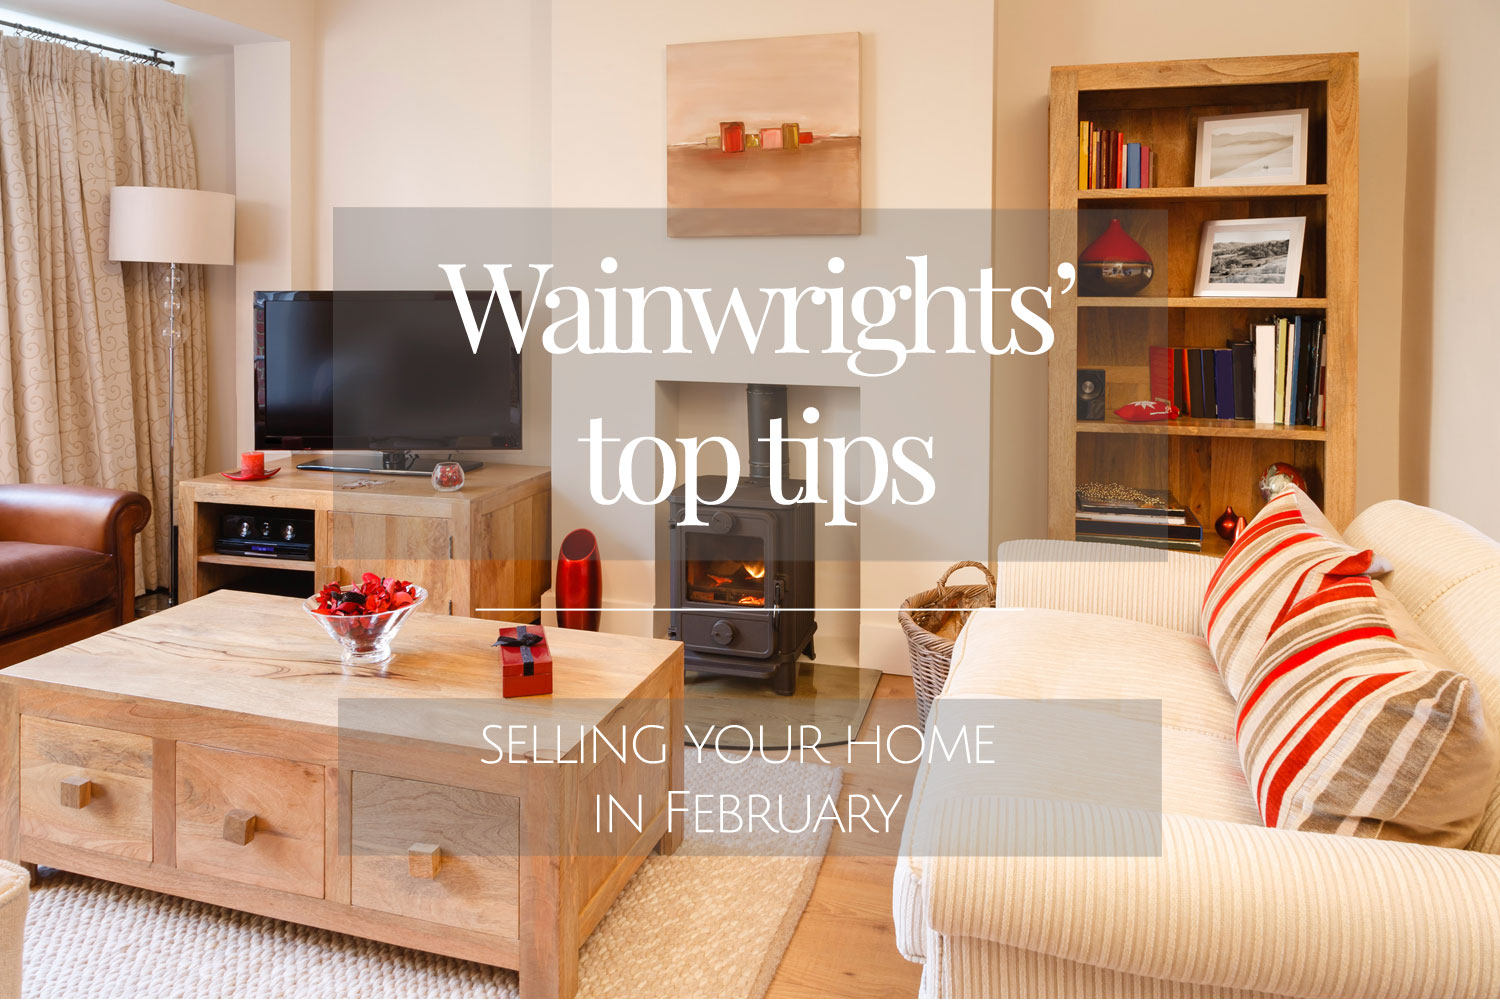 Wainwrights #7 tips for selling your home in February